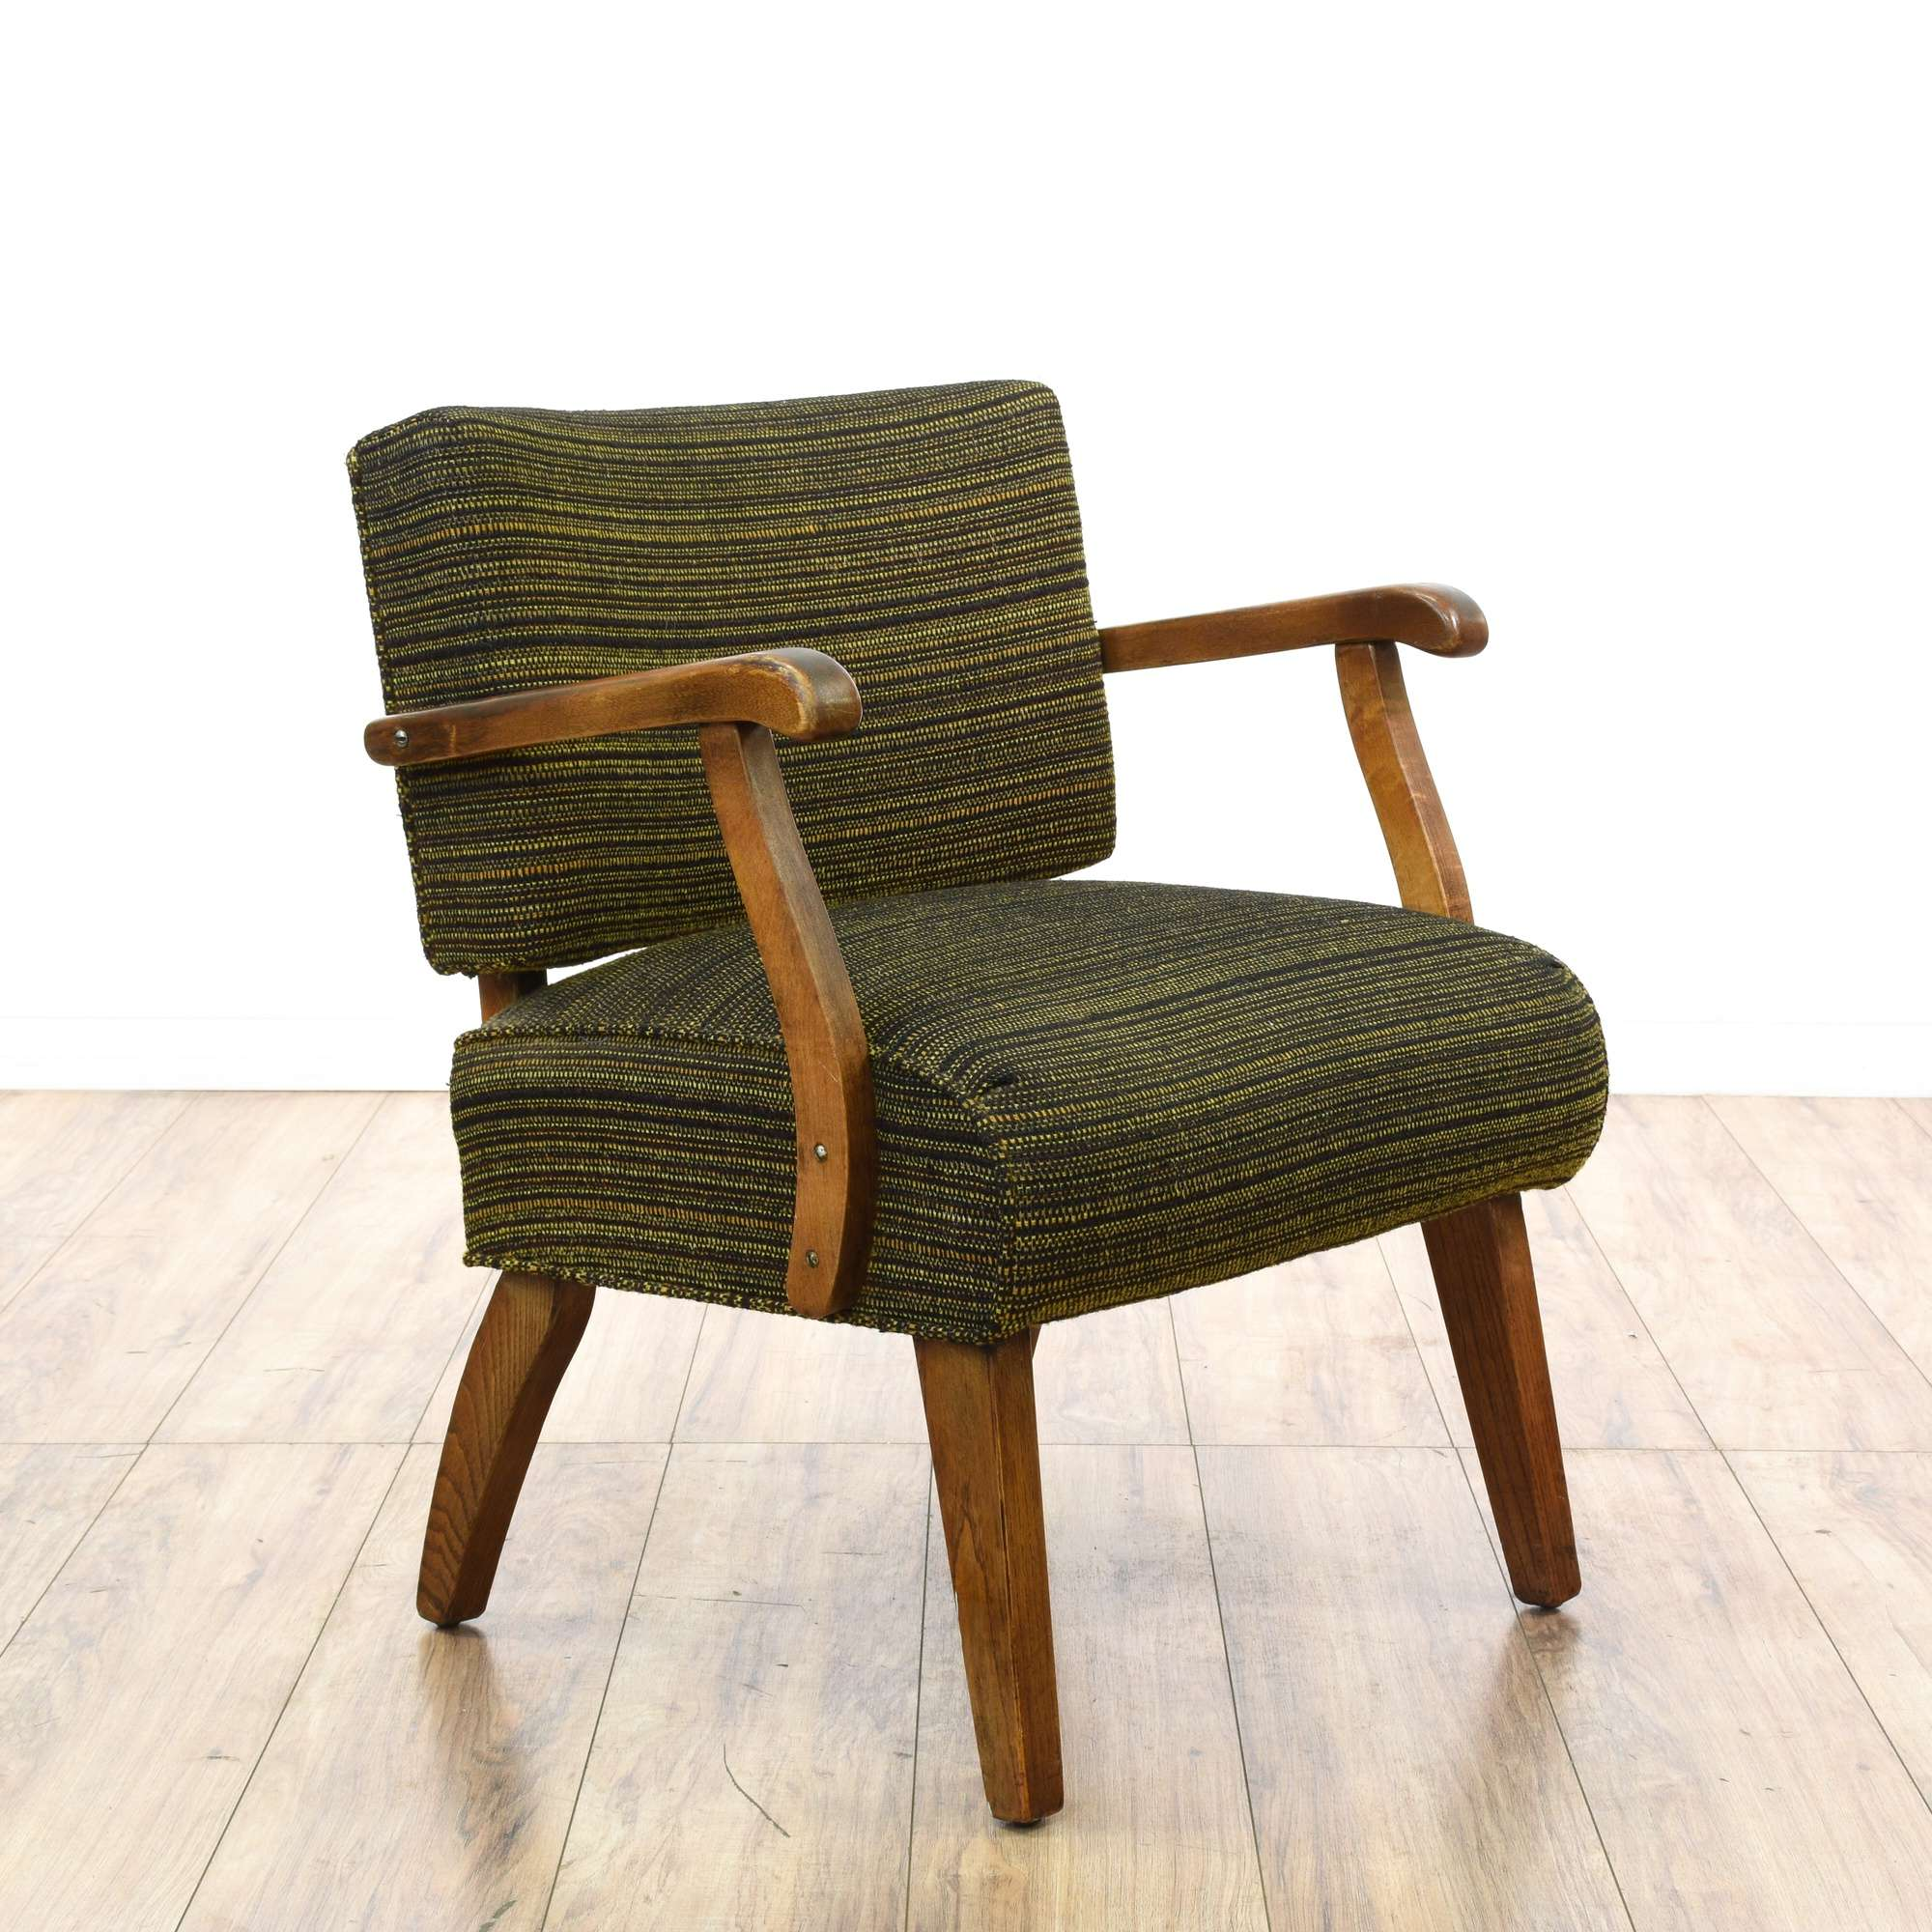 Mid century modern wood frame woven slipper chair